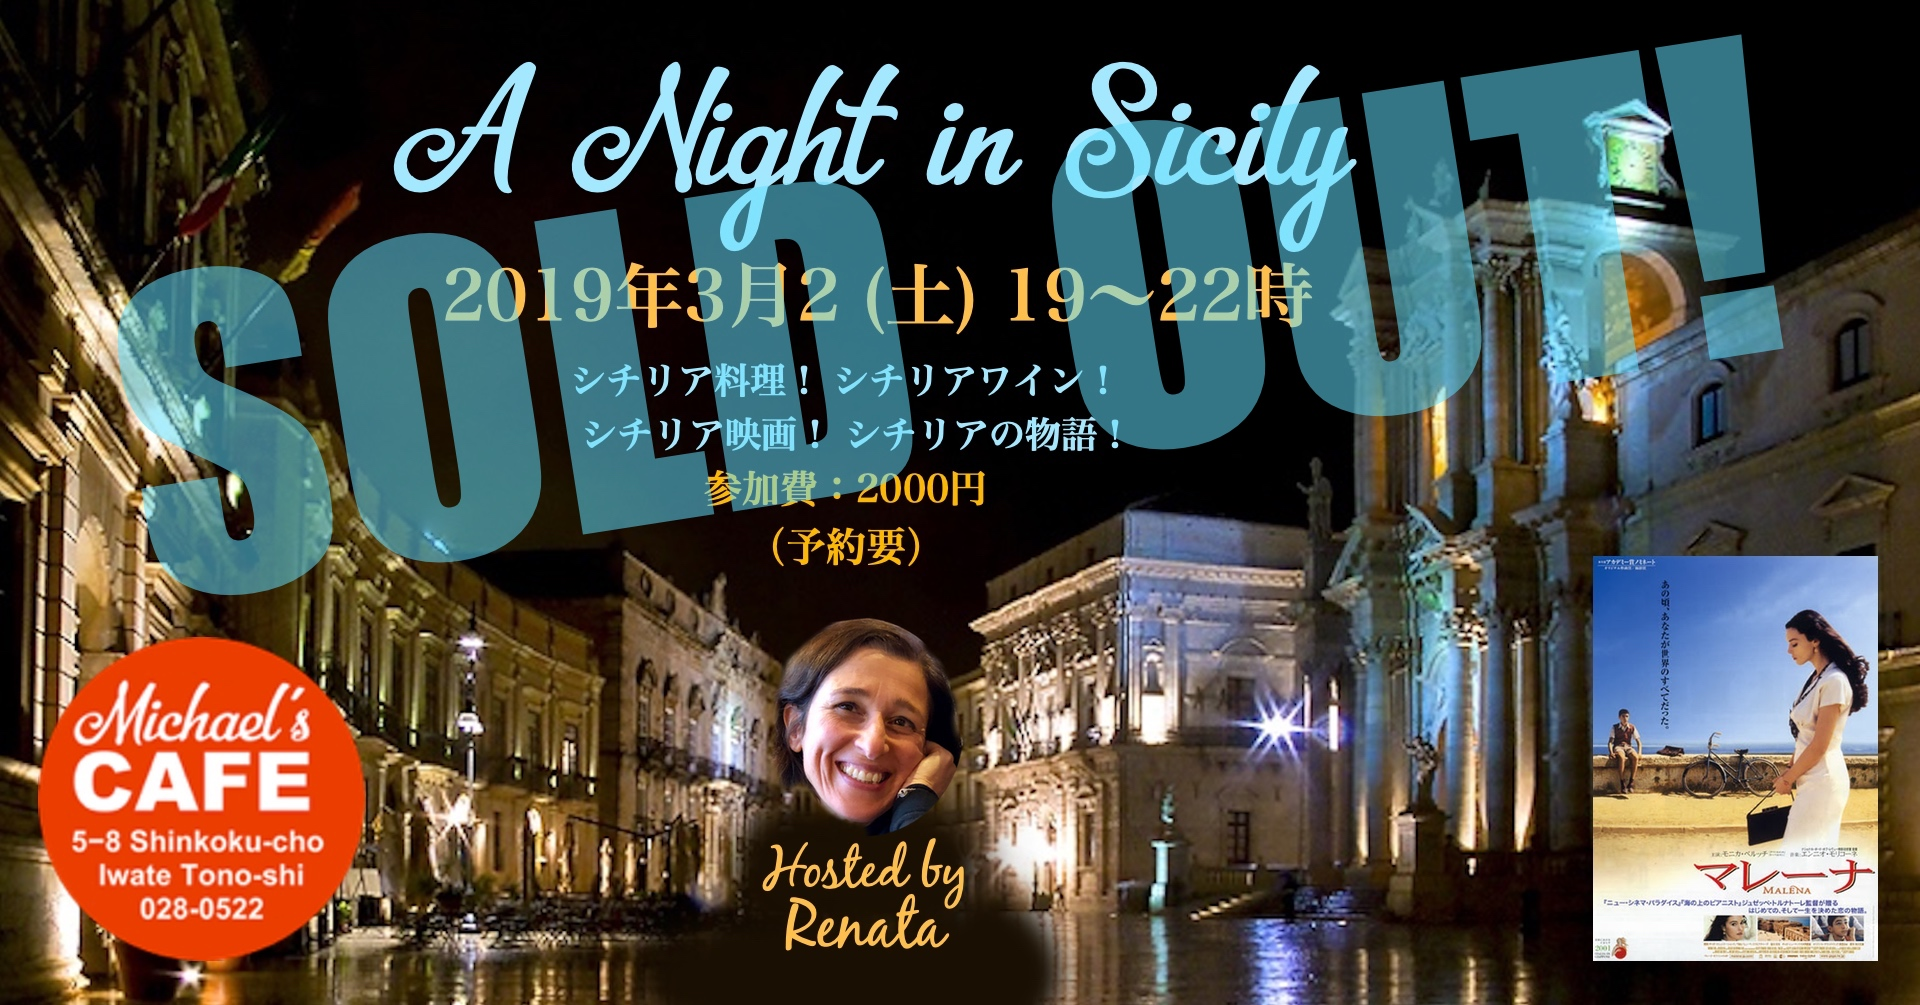 Special Event: A Night in Sicily! Saturday Night, March 2, 7-10 pm at Michael's Cafe